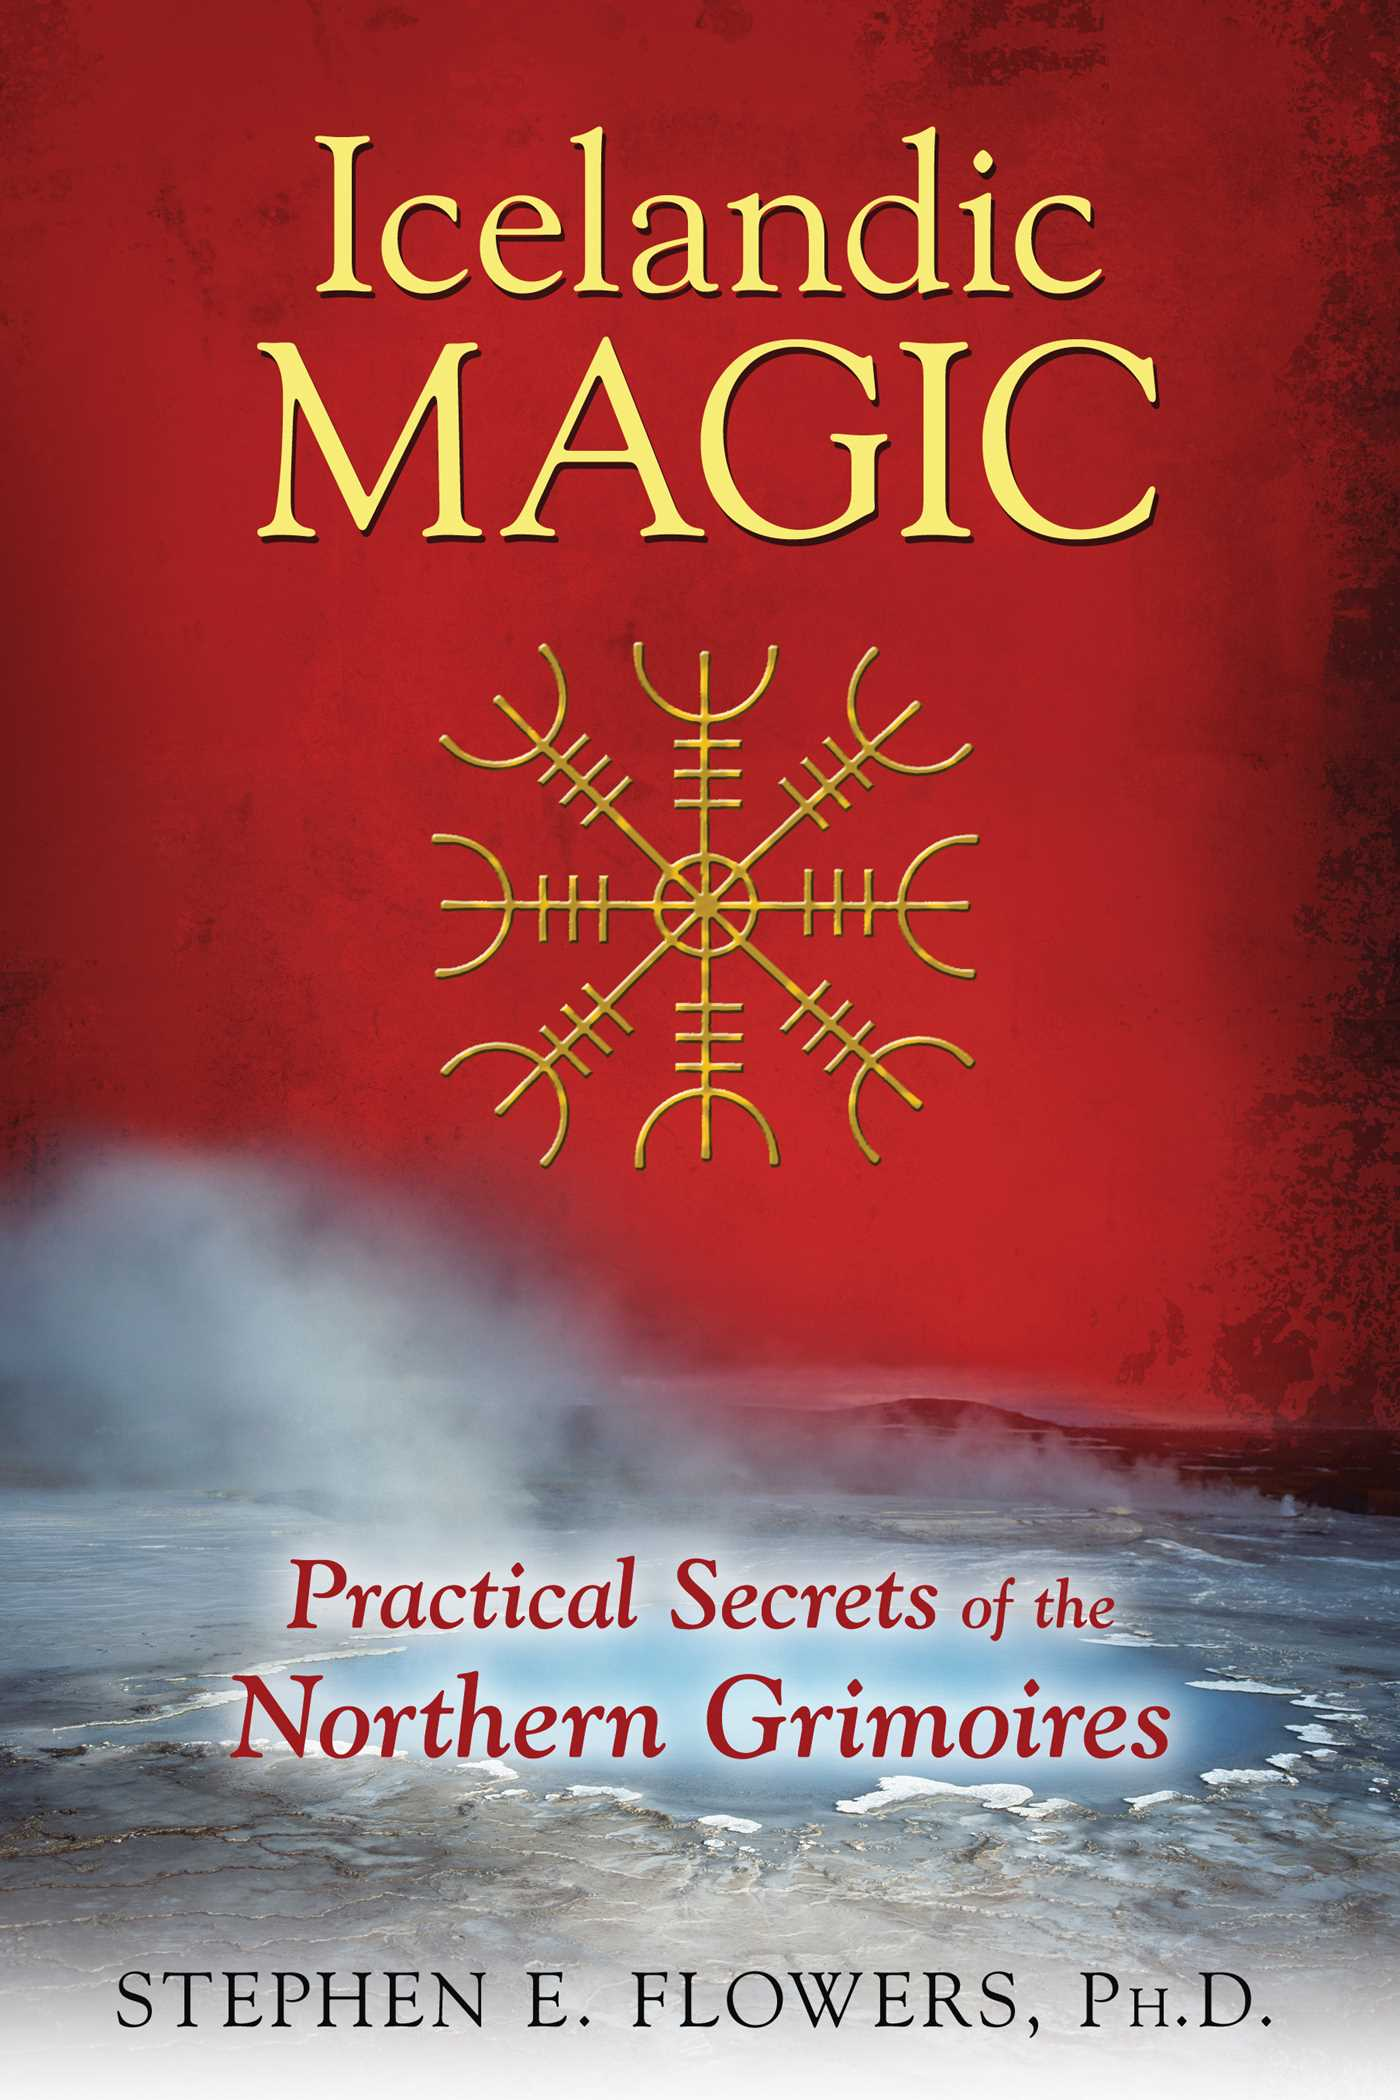 Icelandic Magic | Book by Stephen E. Flowers | Official